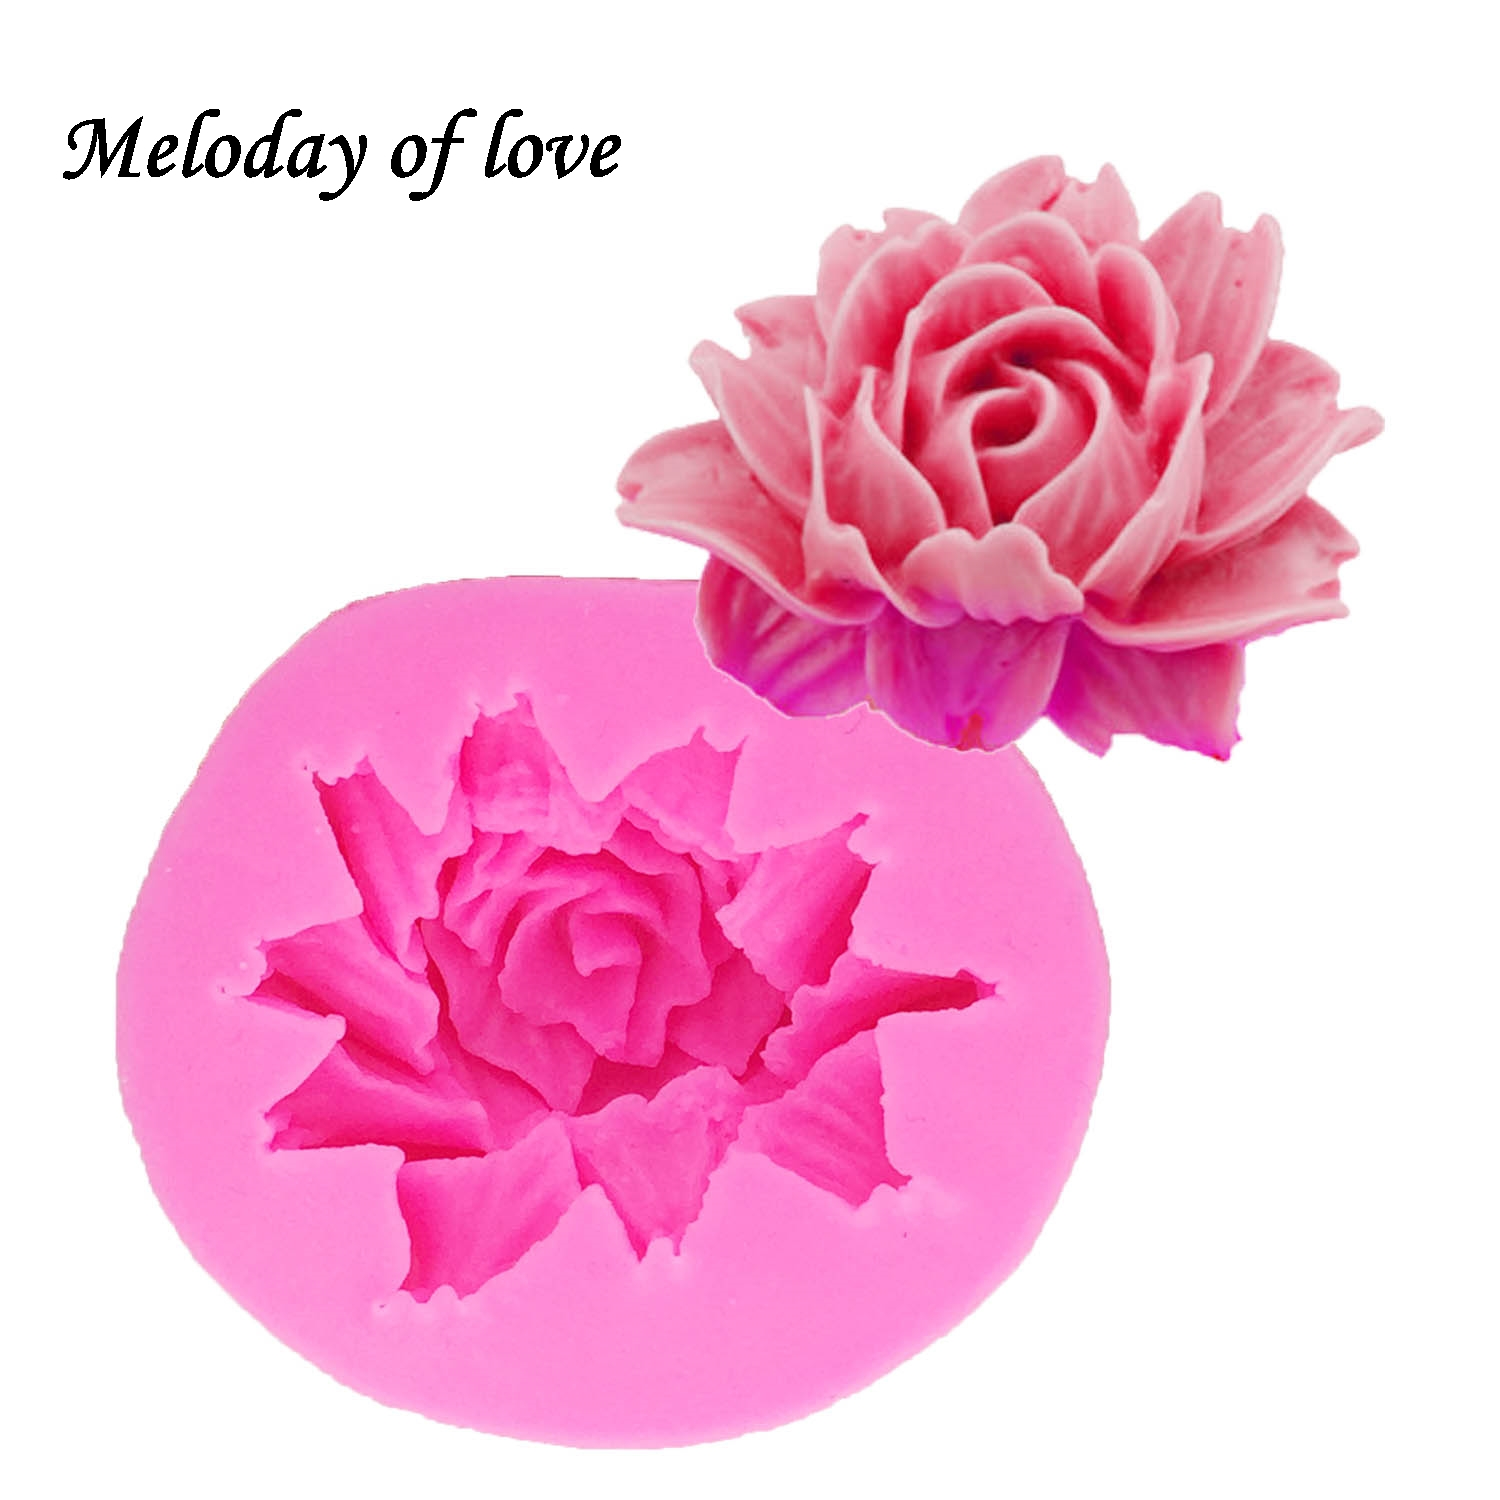 1 Pc 3d Rose Flower Silicone Mold For Fudge Cake Decorating Chocolate Cookies Soap Clay Resins Kitchen Baking Tools Stencil And To Have A Long Life. Arts,crafts & Sewing Pottery & Ceramics